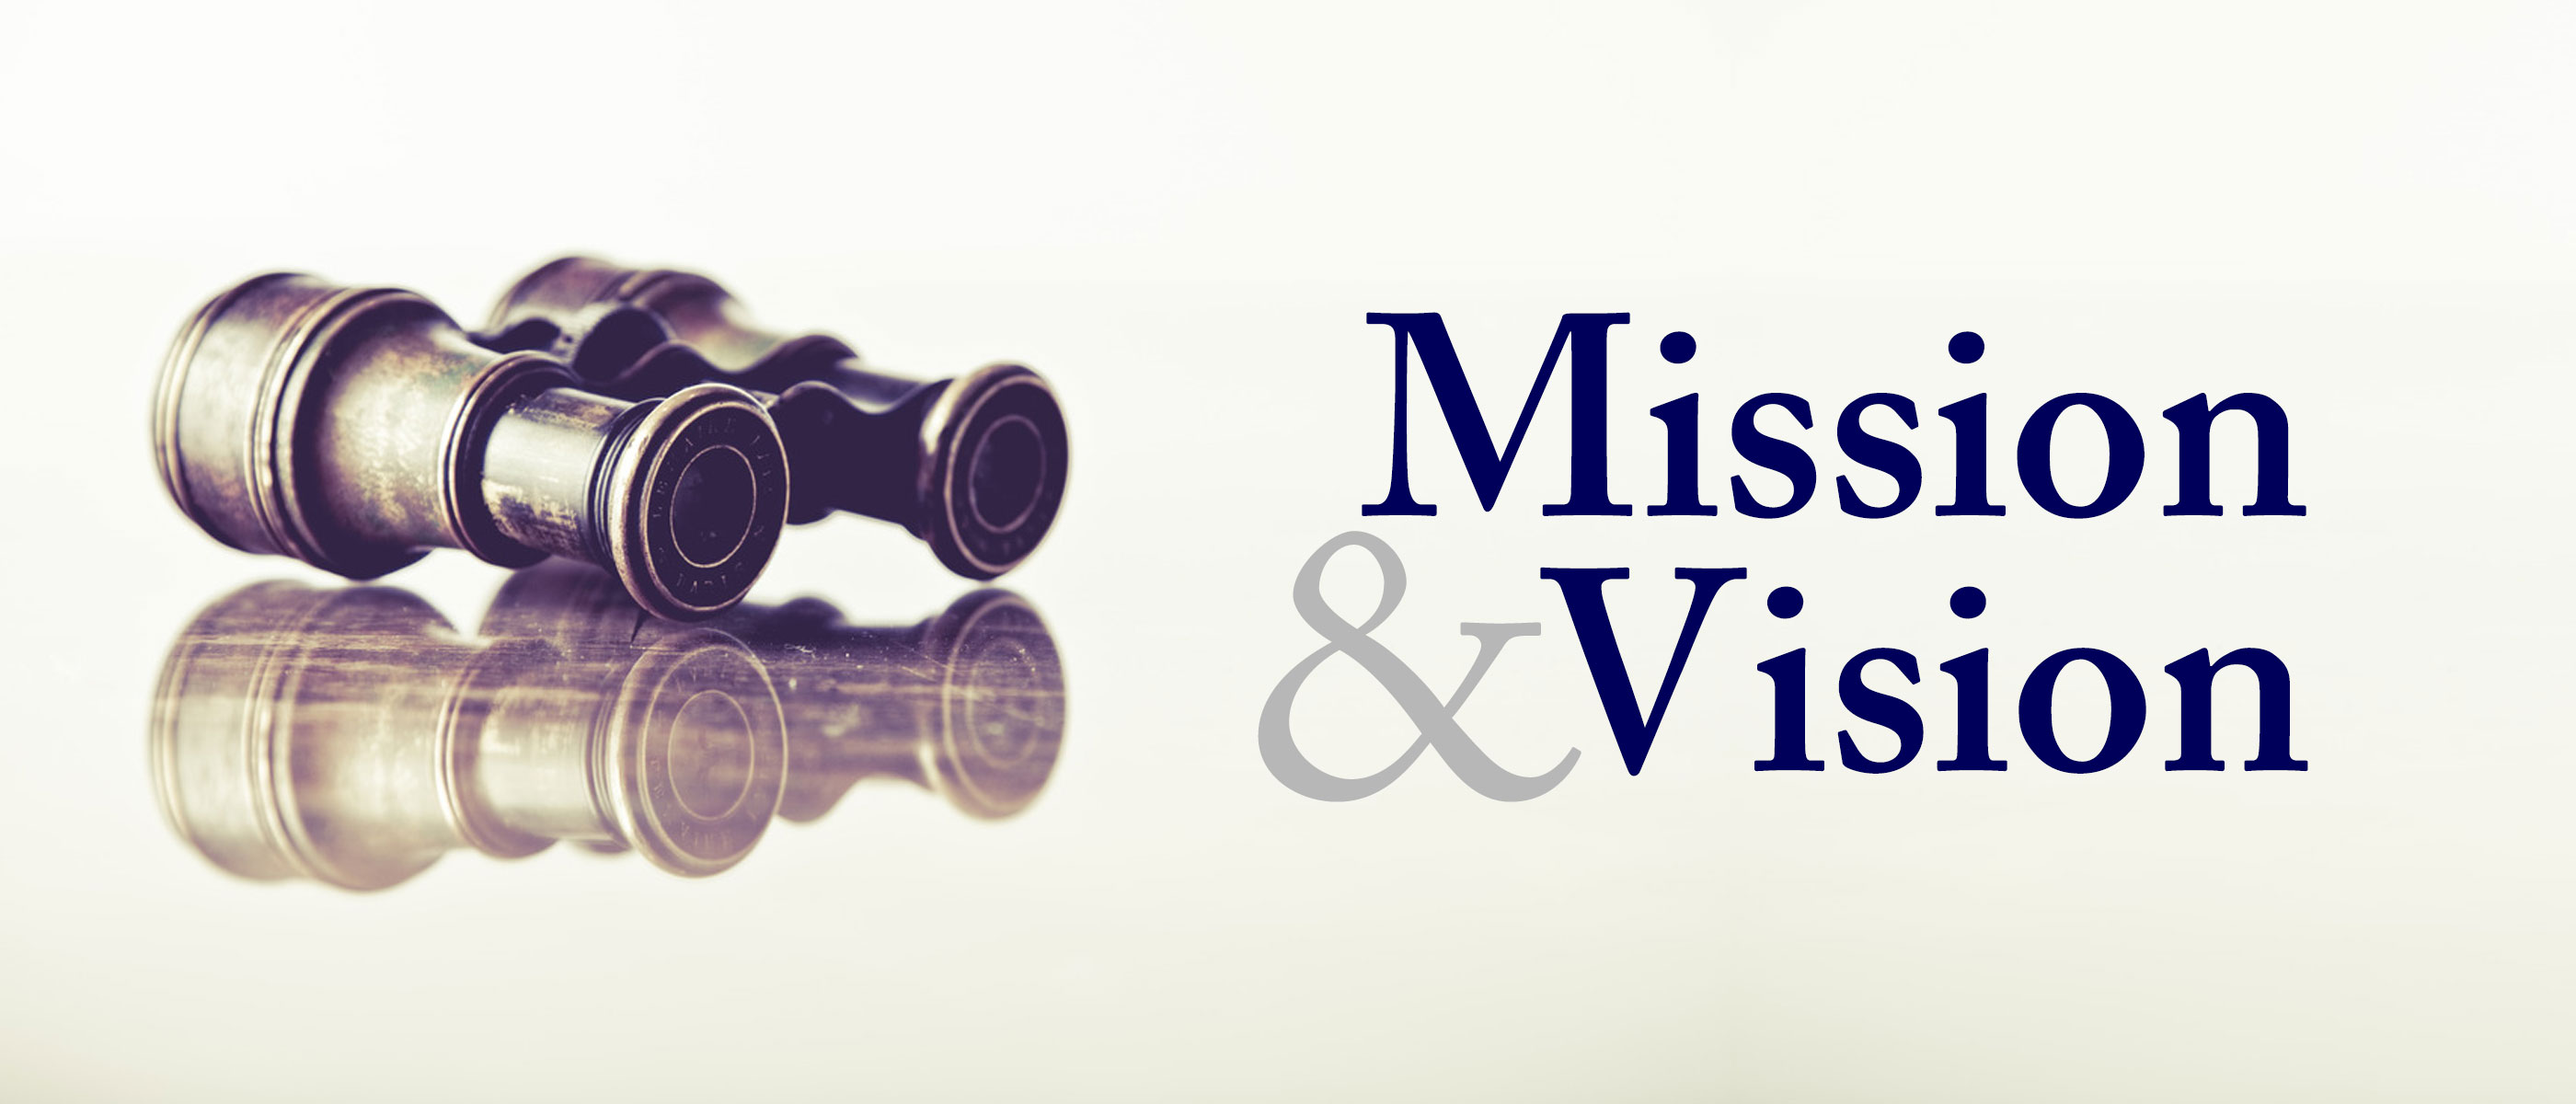 Mission and View are written at the top in Purple Lettering. the photo has a binoculars that look like they are from the 1700's. the rest is a faint cream color.